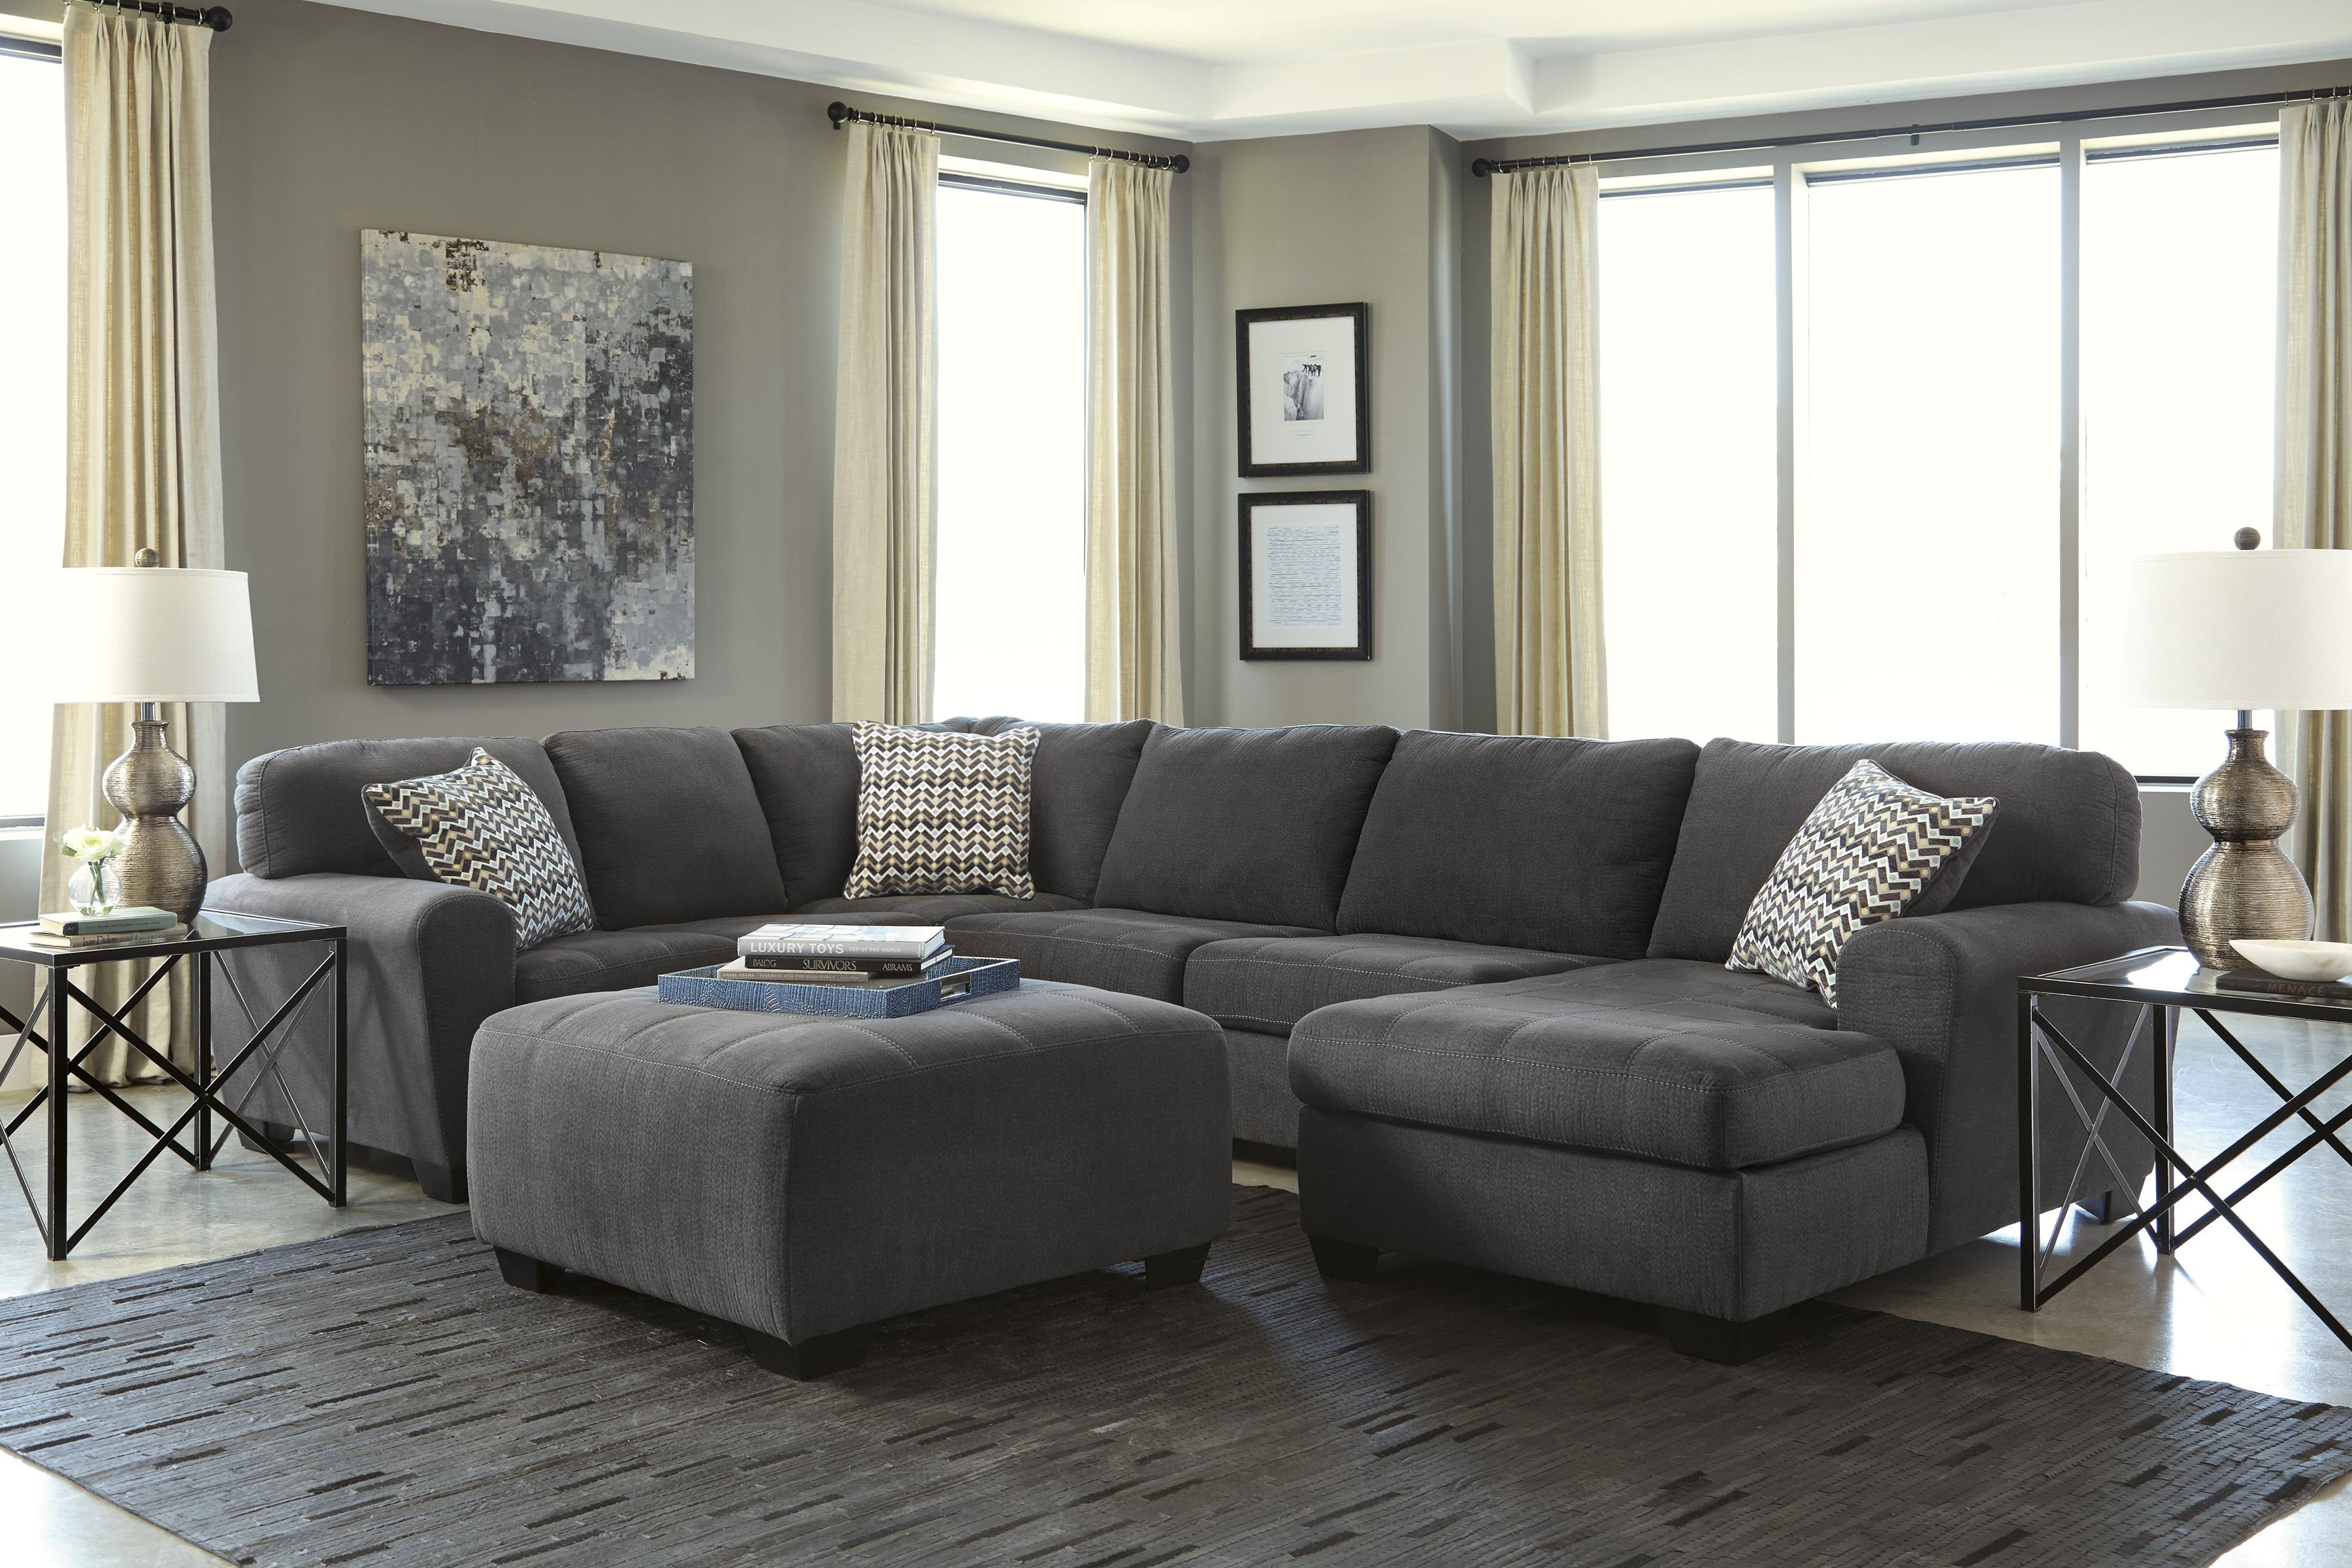 Benchcraft Sorenton Stationary Living Room Group - Item Number: 28600 Living Room Group 1